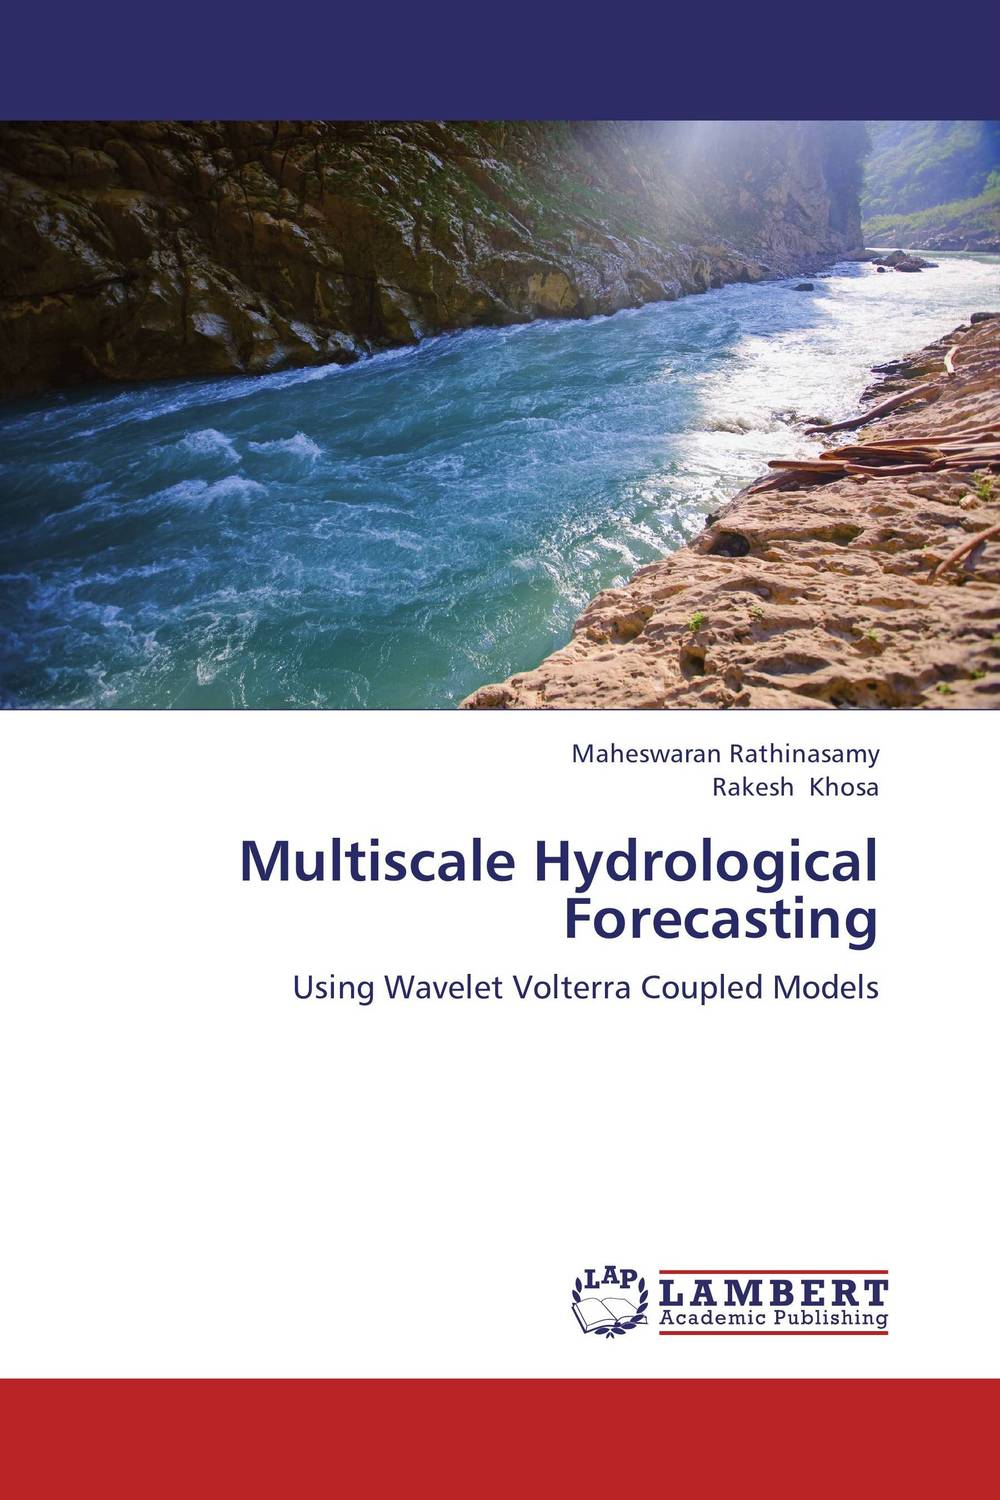 Multiscale Hydrological Forecasting